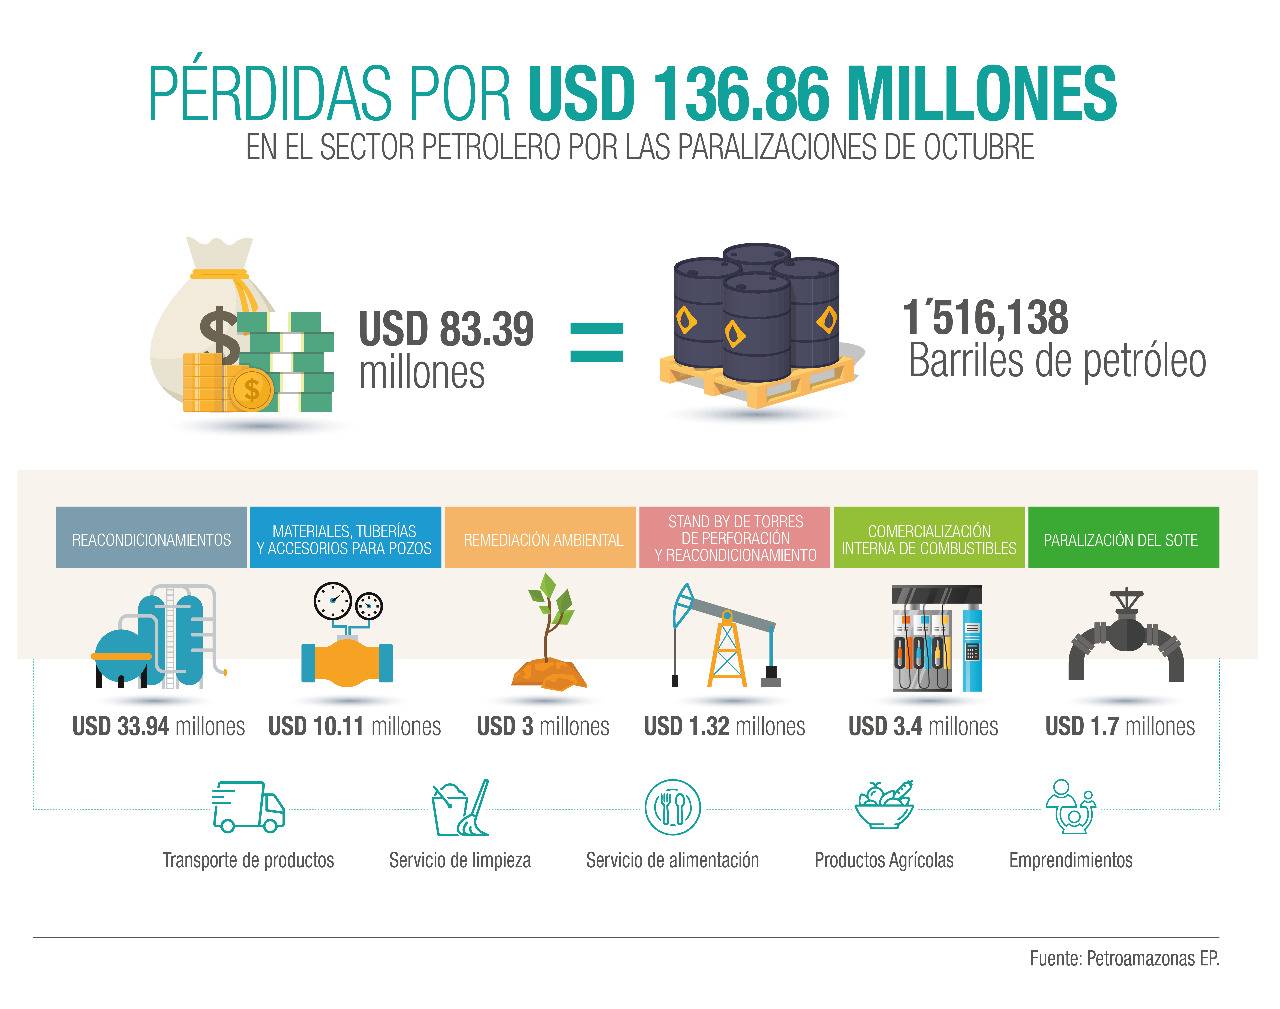 Ecuador lost USD 136.86 million in the oil sector, during the October shutdowns